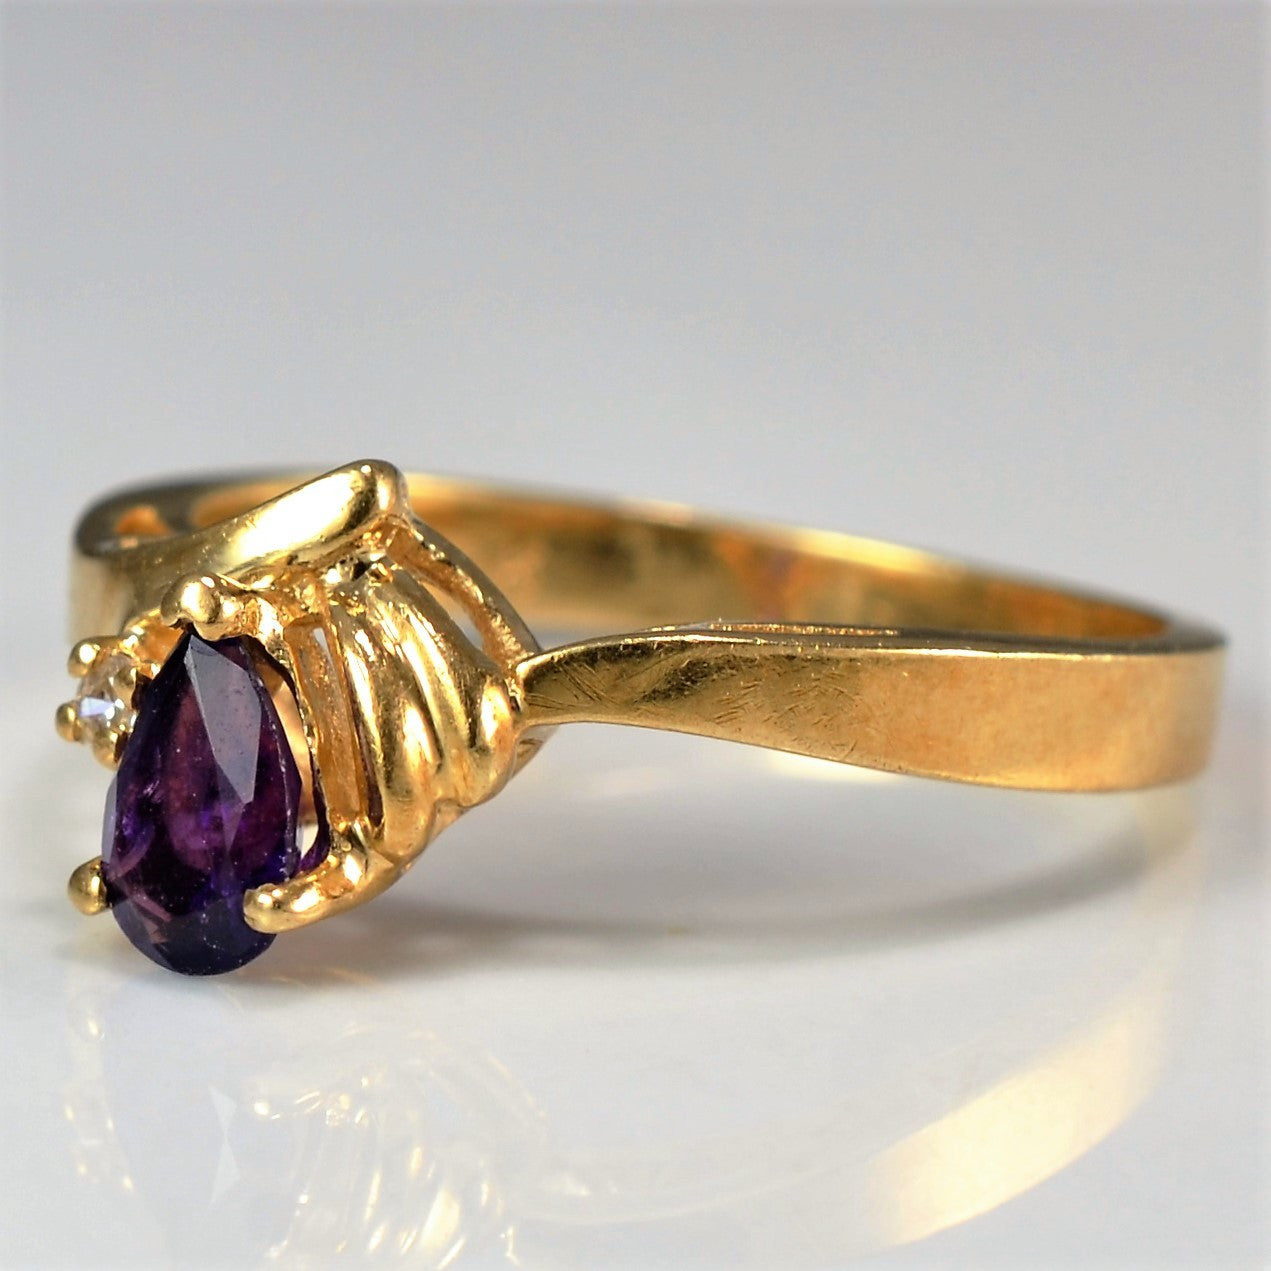 Pear Cut Amethyst Ring | SZ 6.25 |